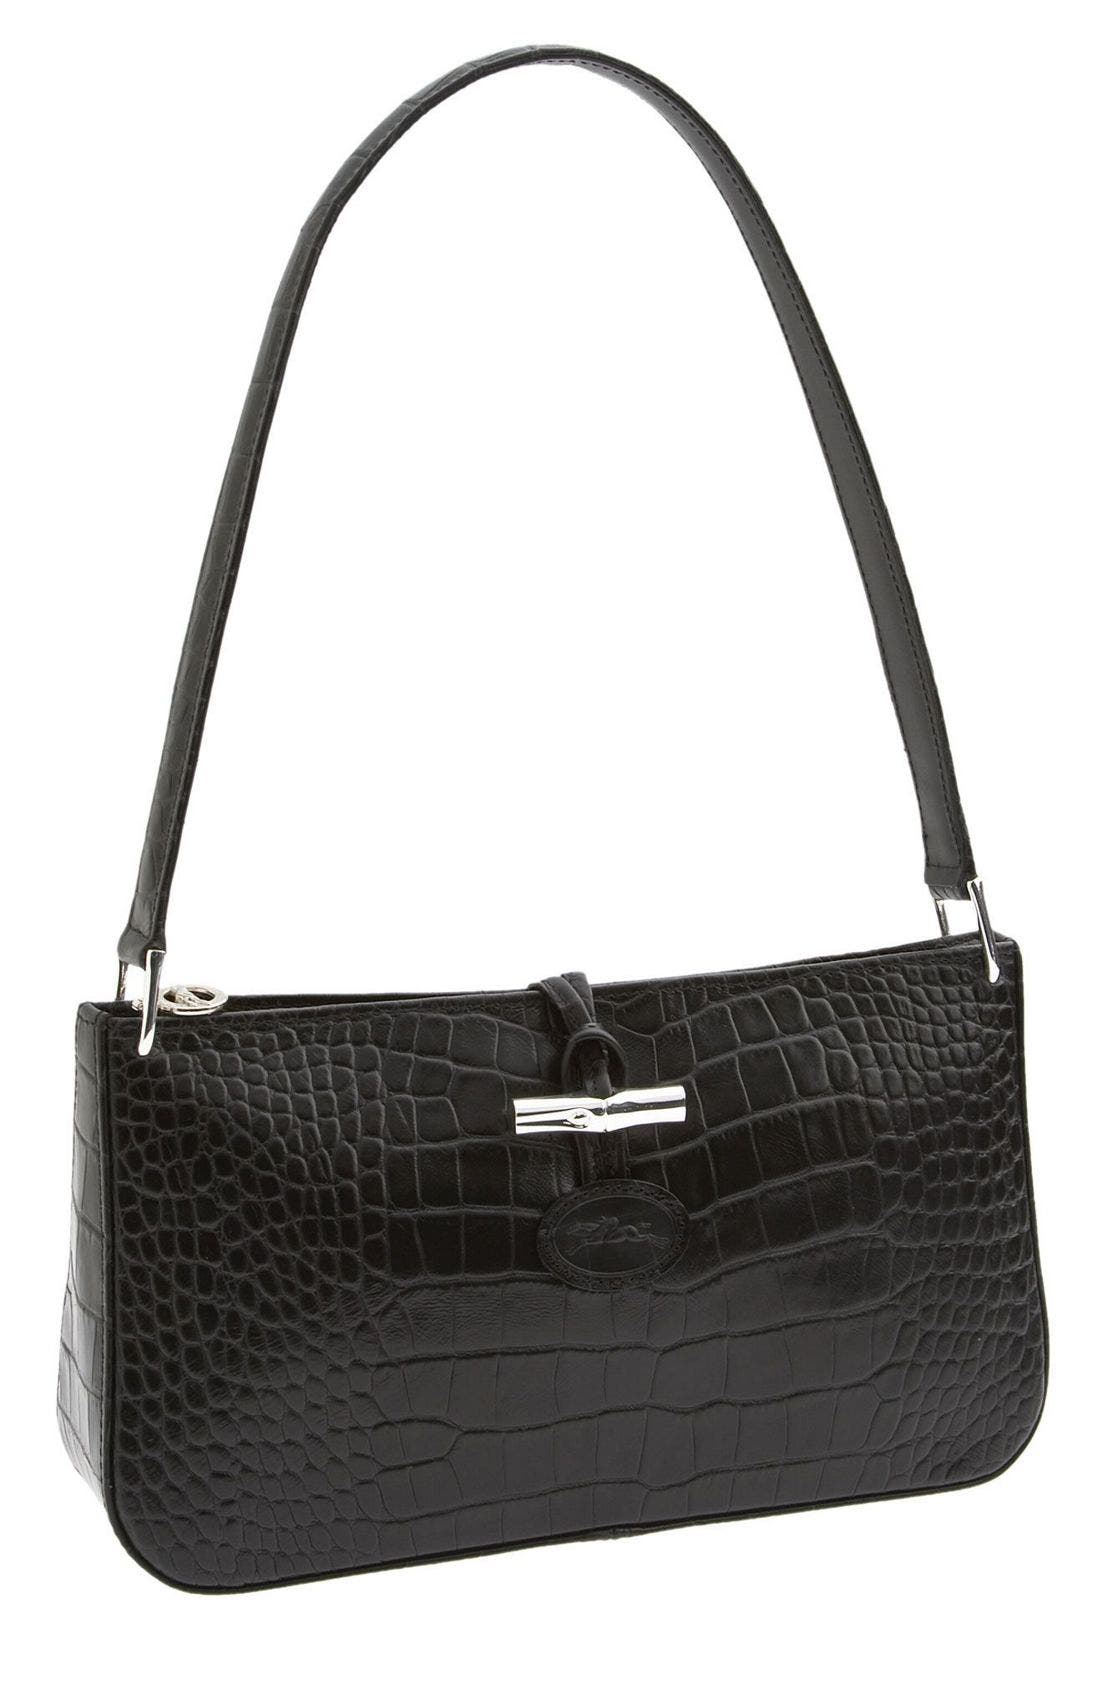 Main Image - Longchamp 'Roseau Croco - Small' Shoulder Bag